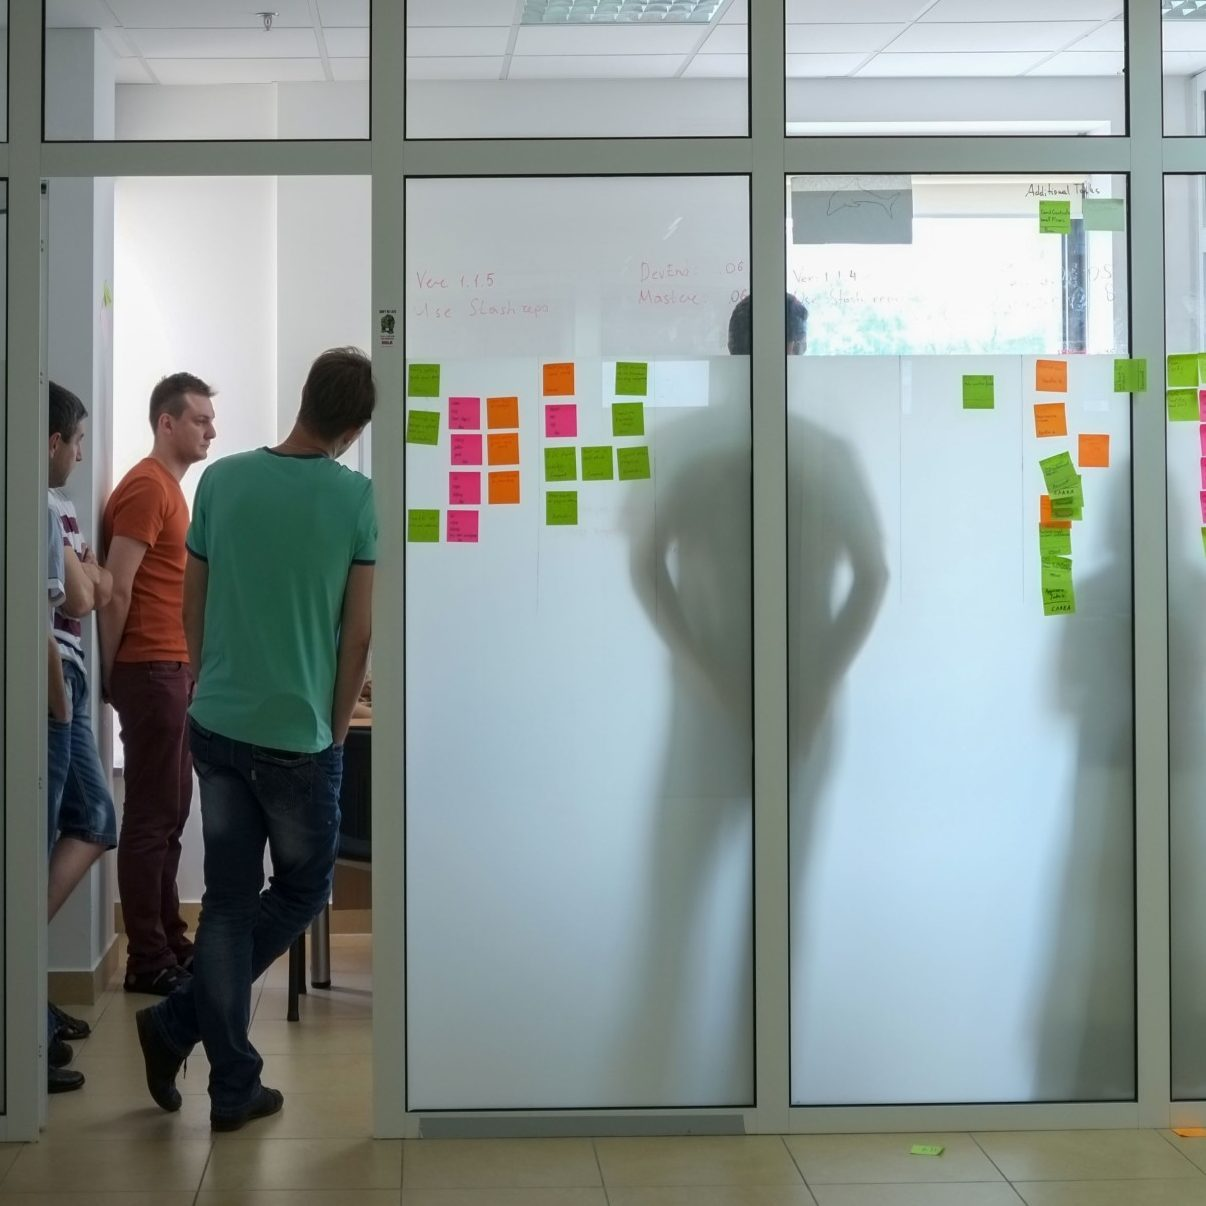 daily-scrum-meeting_t20_oRppz4